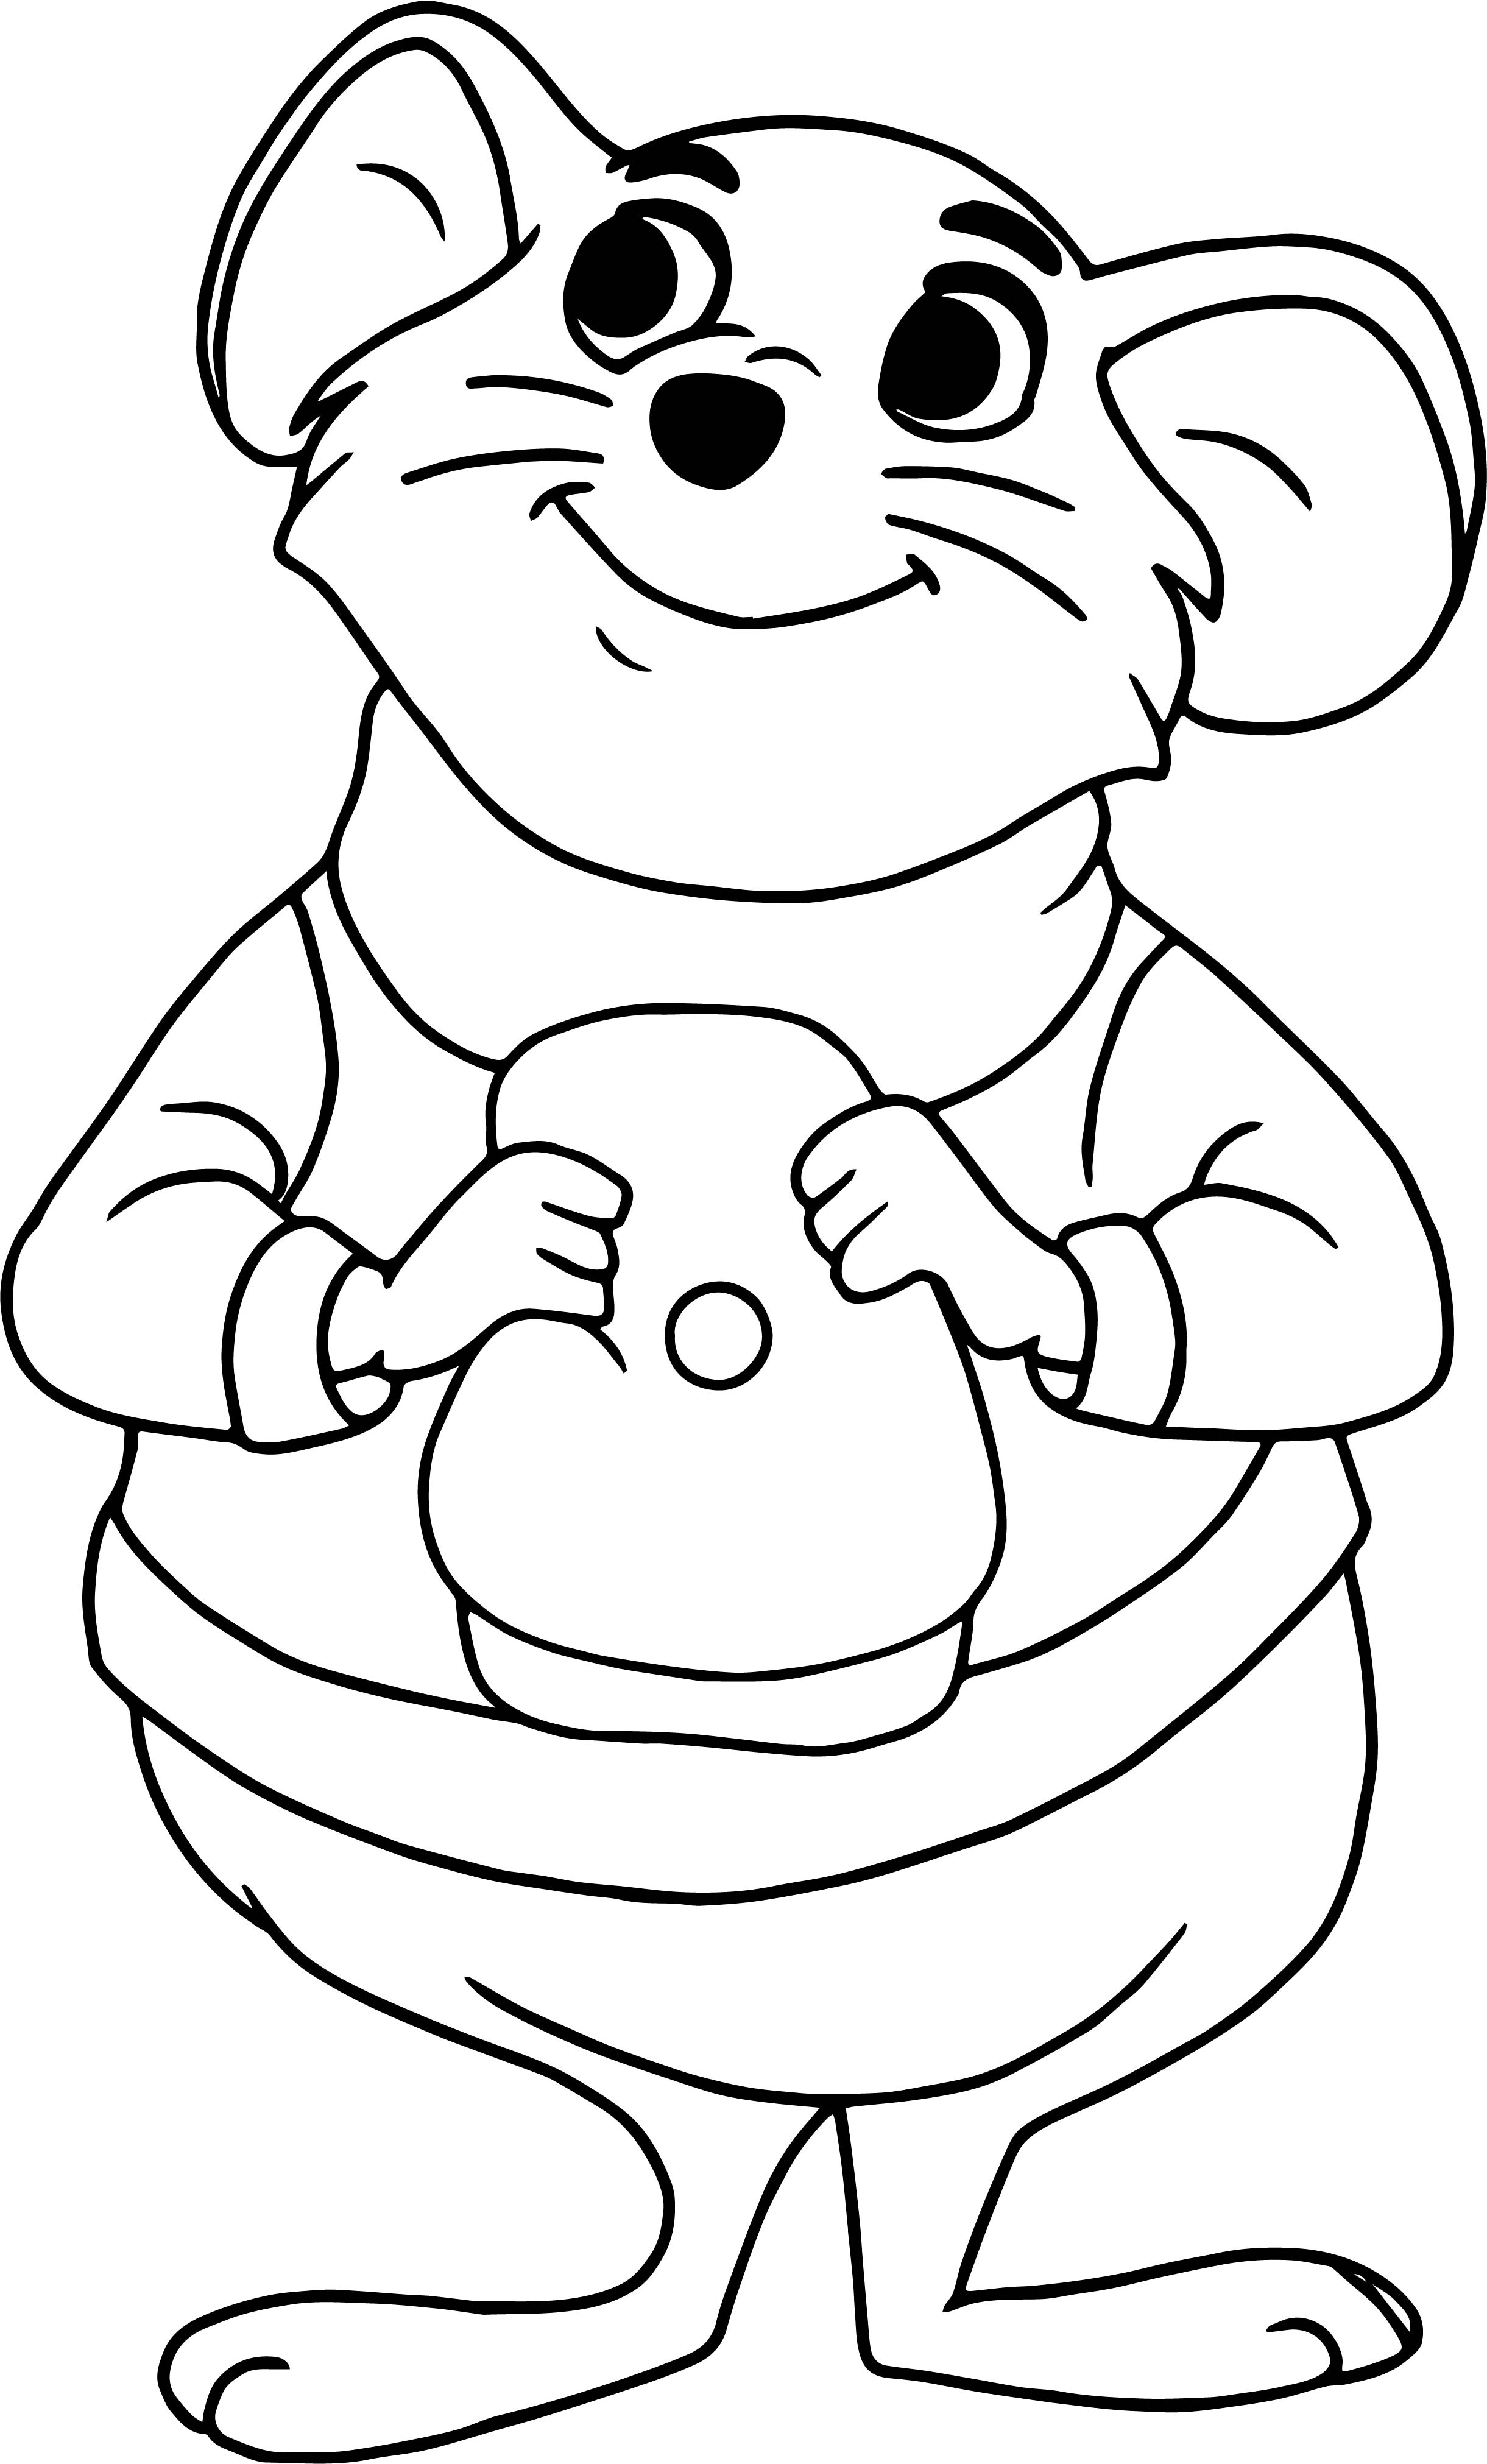 avatar the last airbender symbols coloring pages virtren com